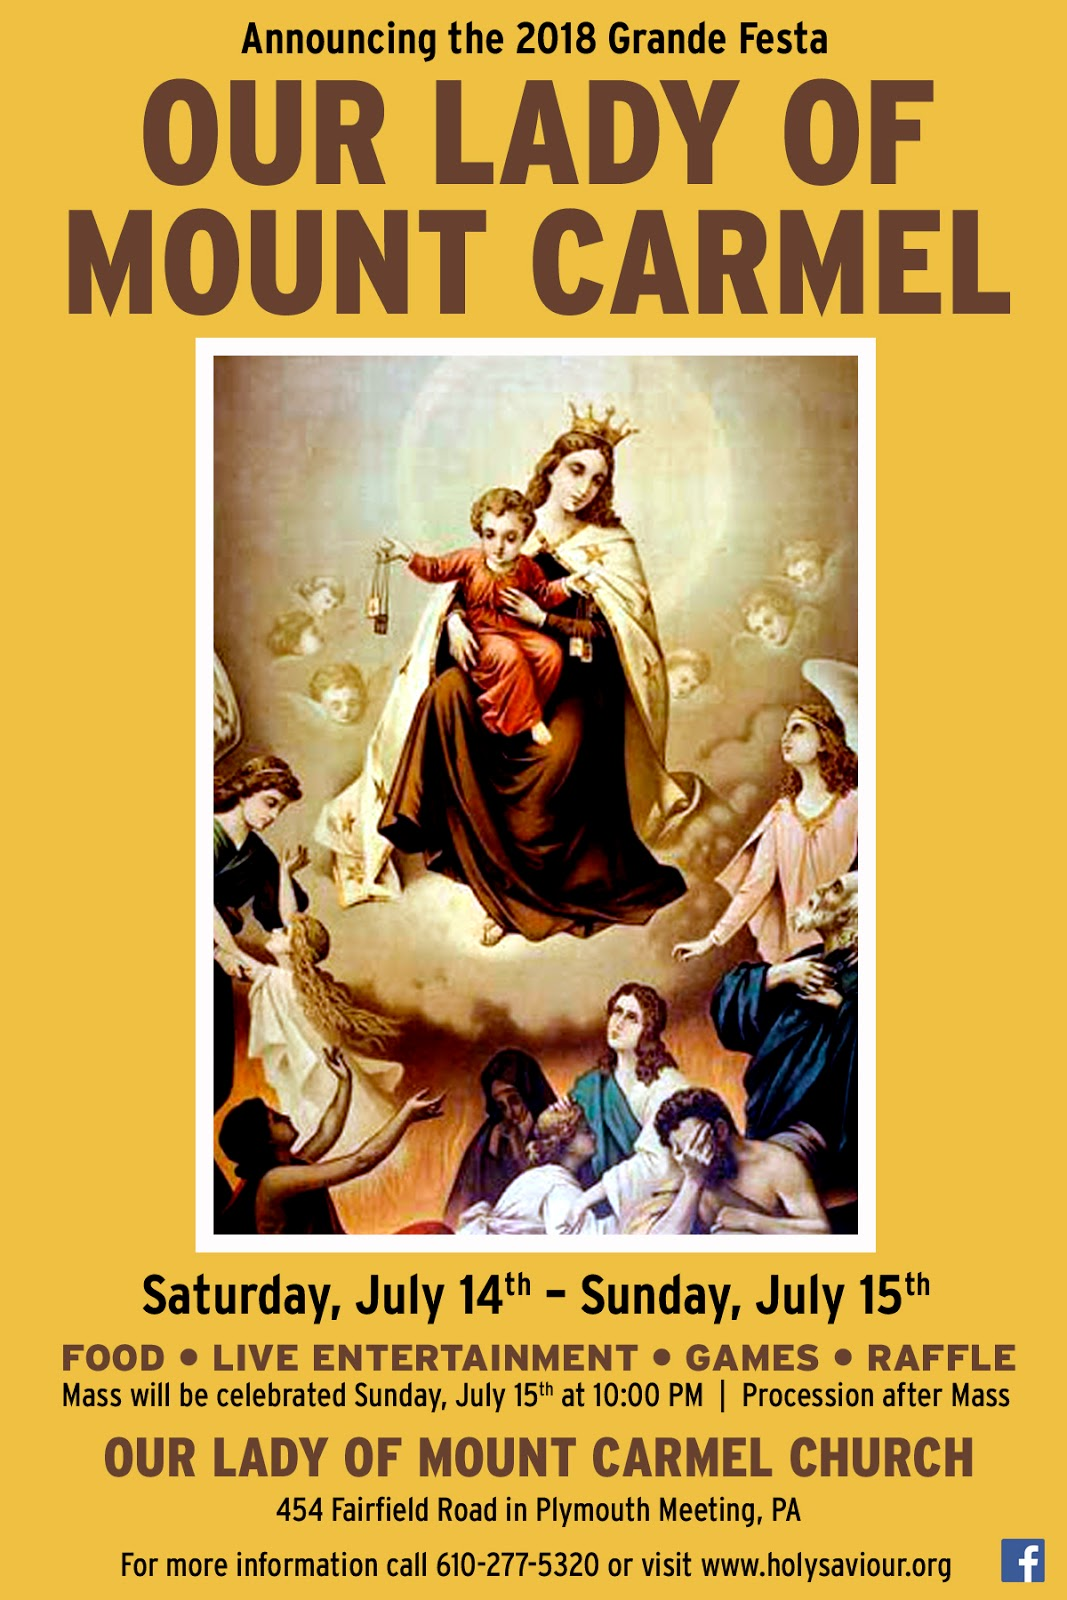 Il Regno: Announcing the 2018 Feast of Our Lady of Mount